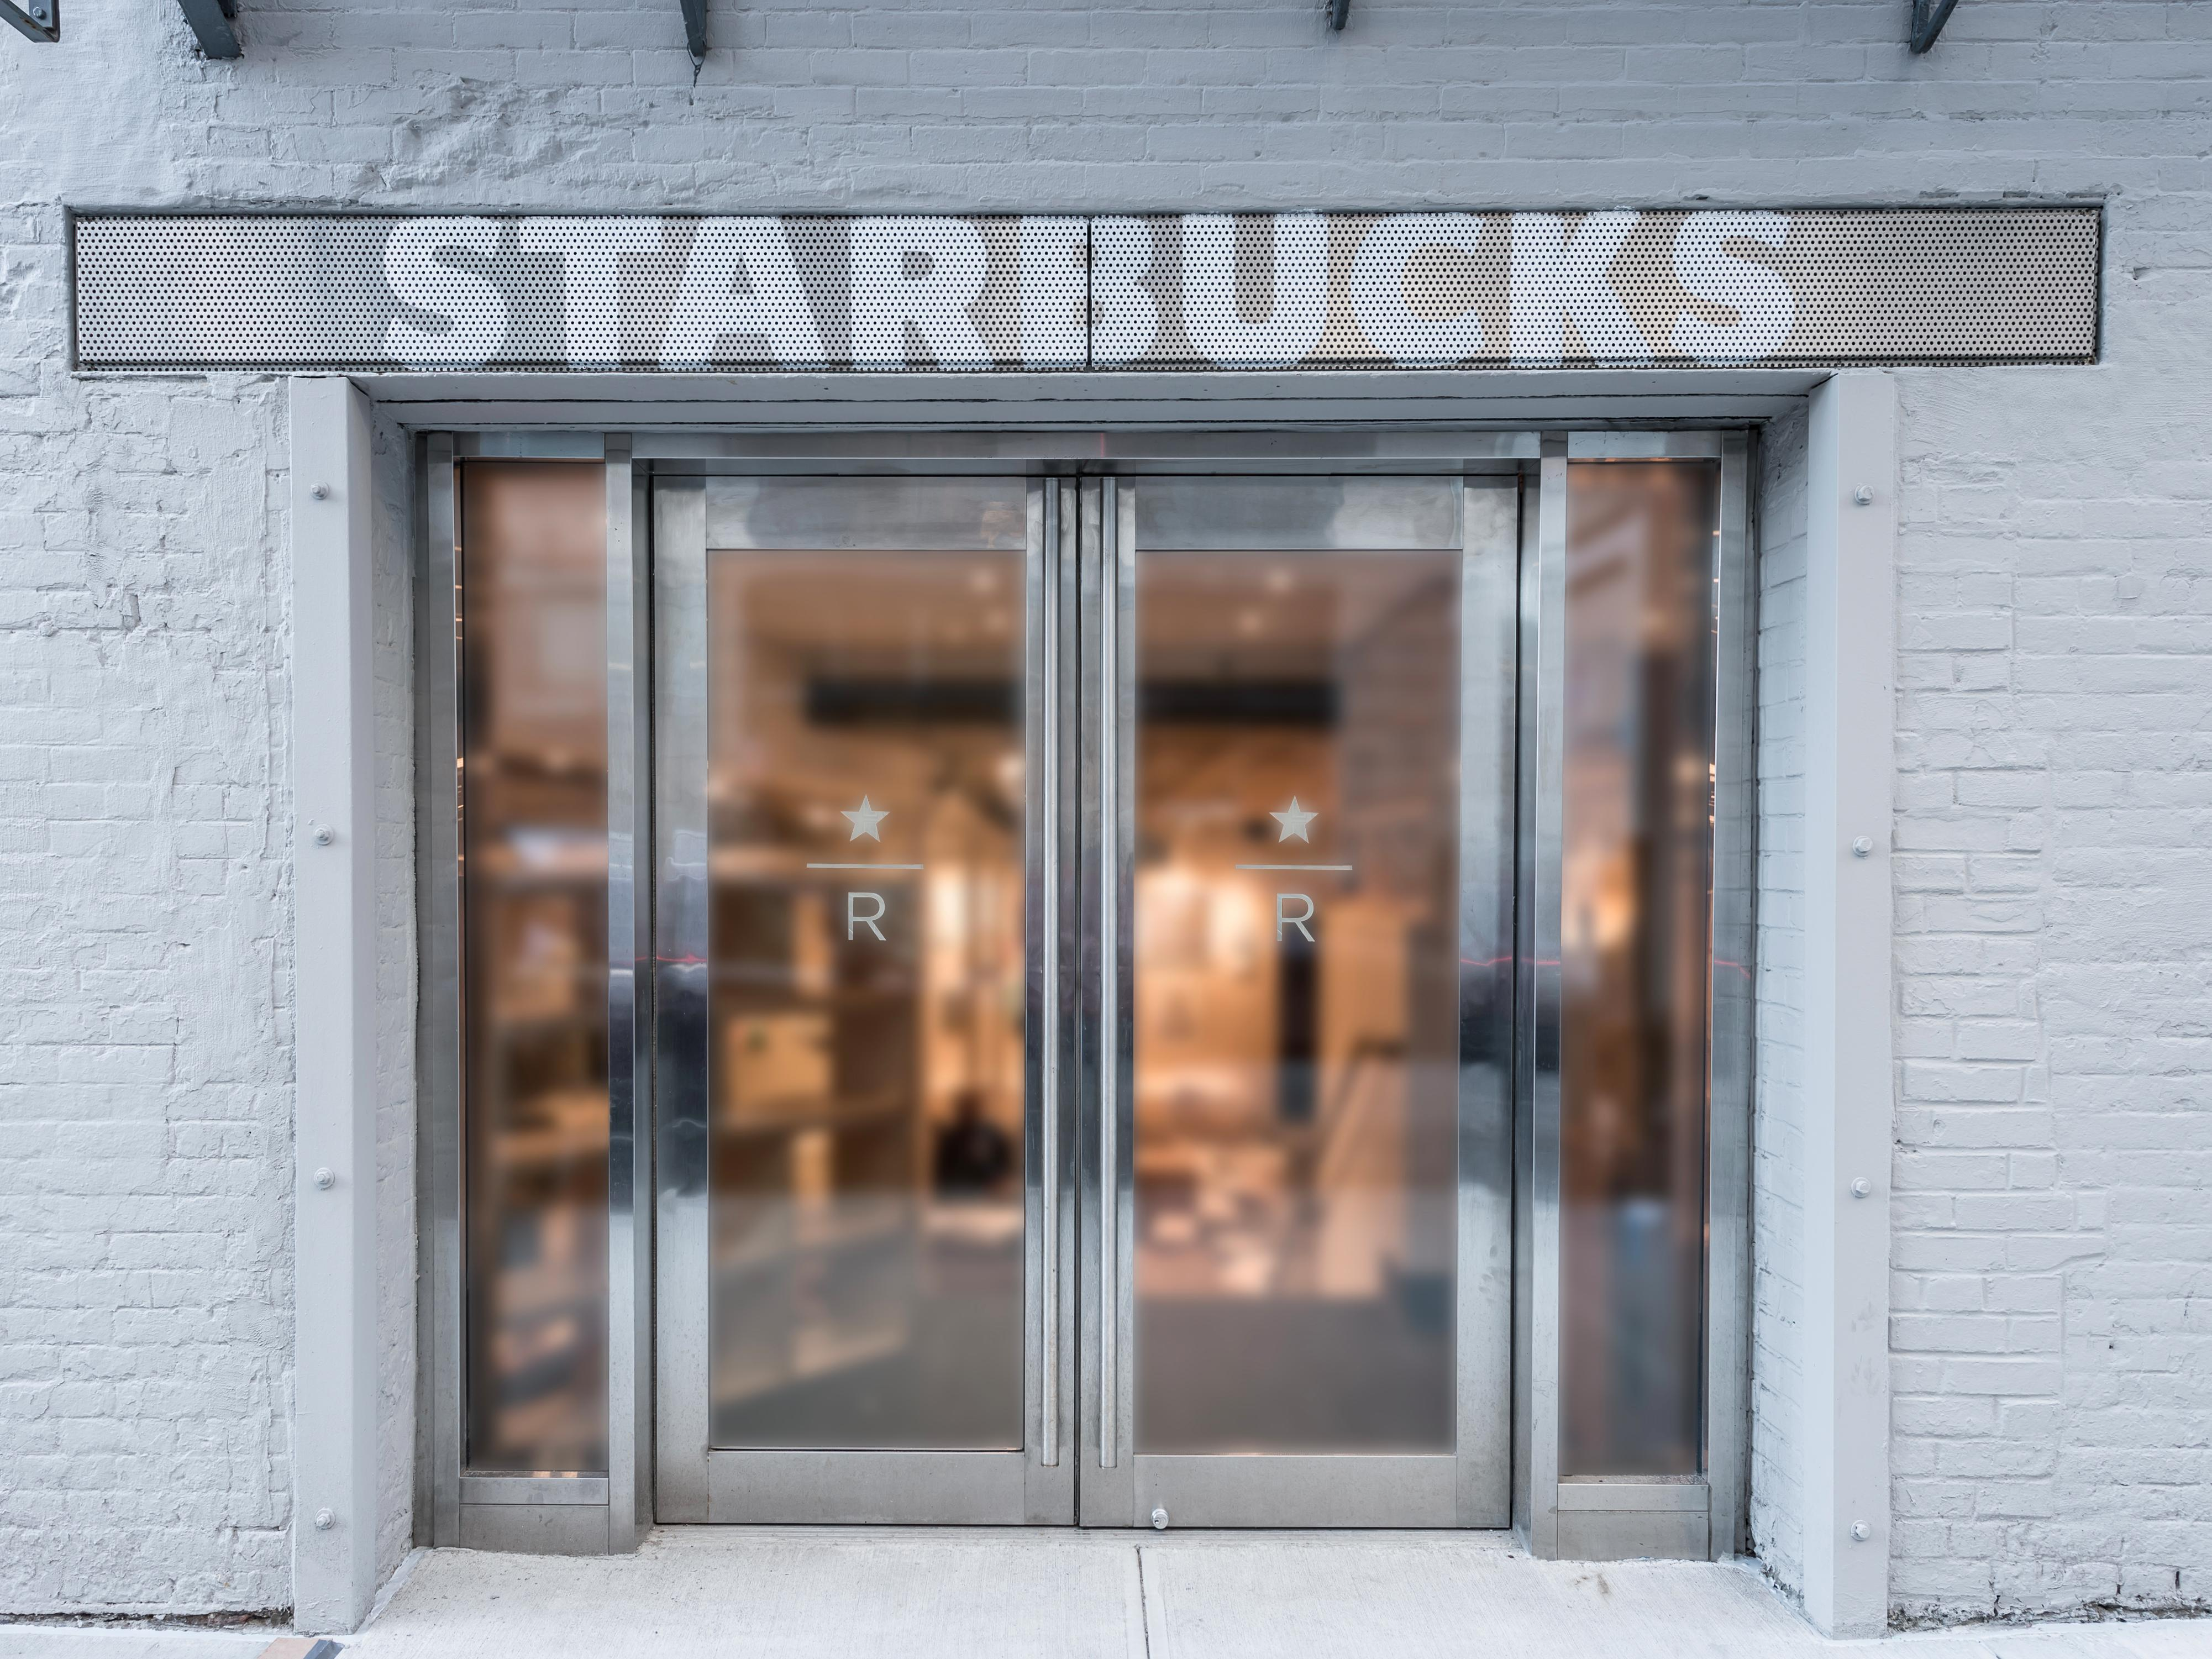 Starbucks is opening upscale cafes where plain black coffee costs $4